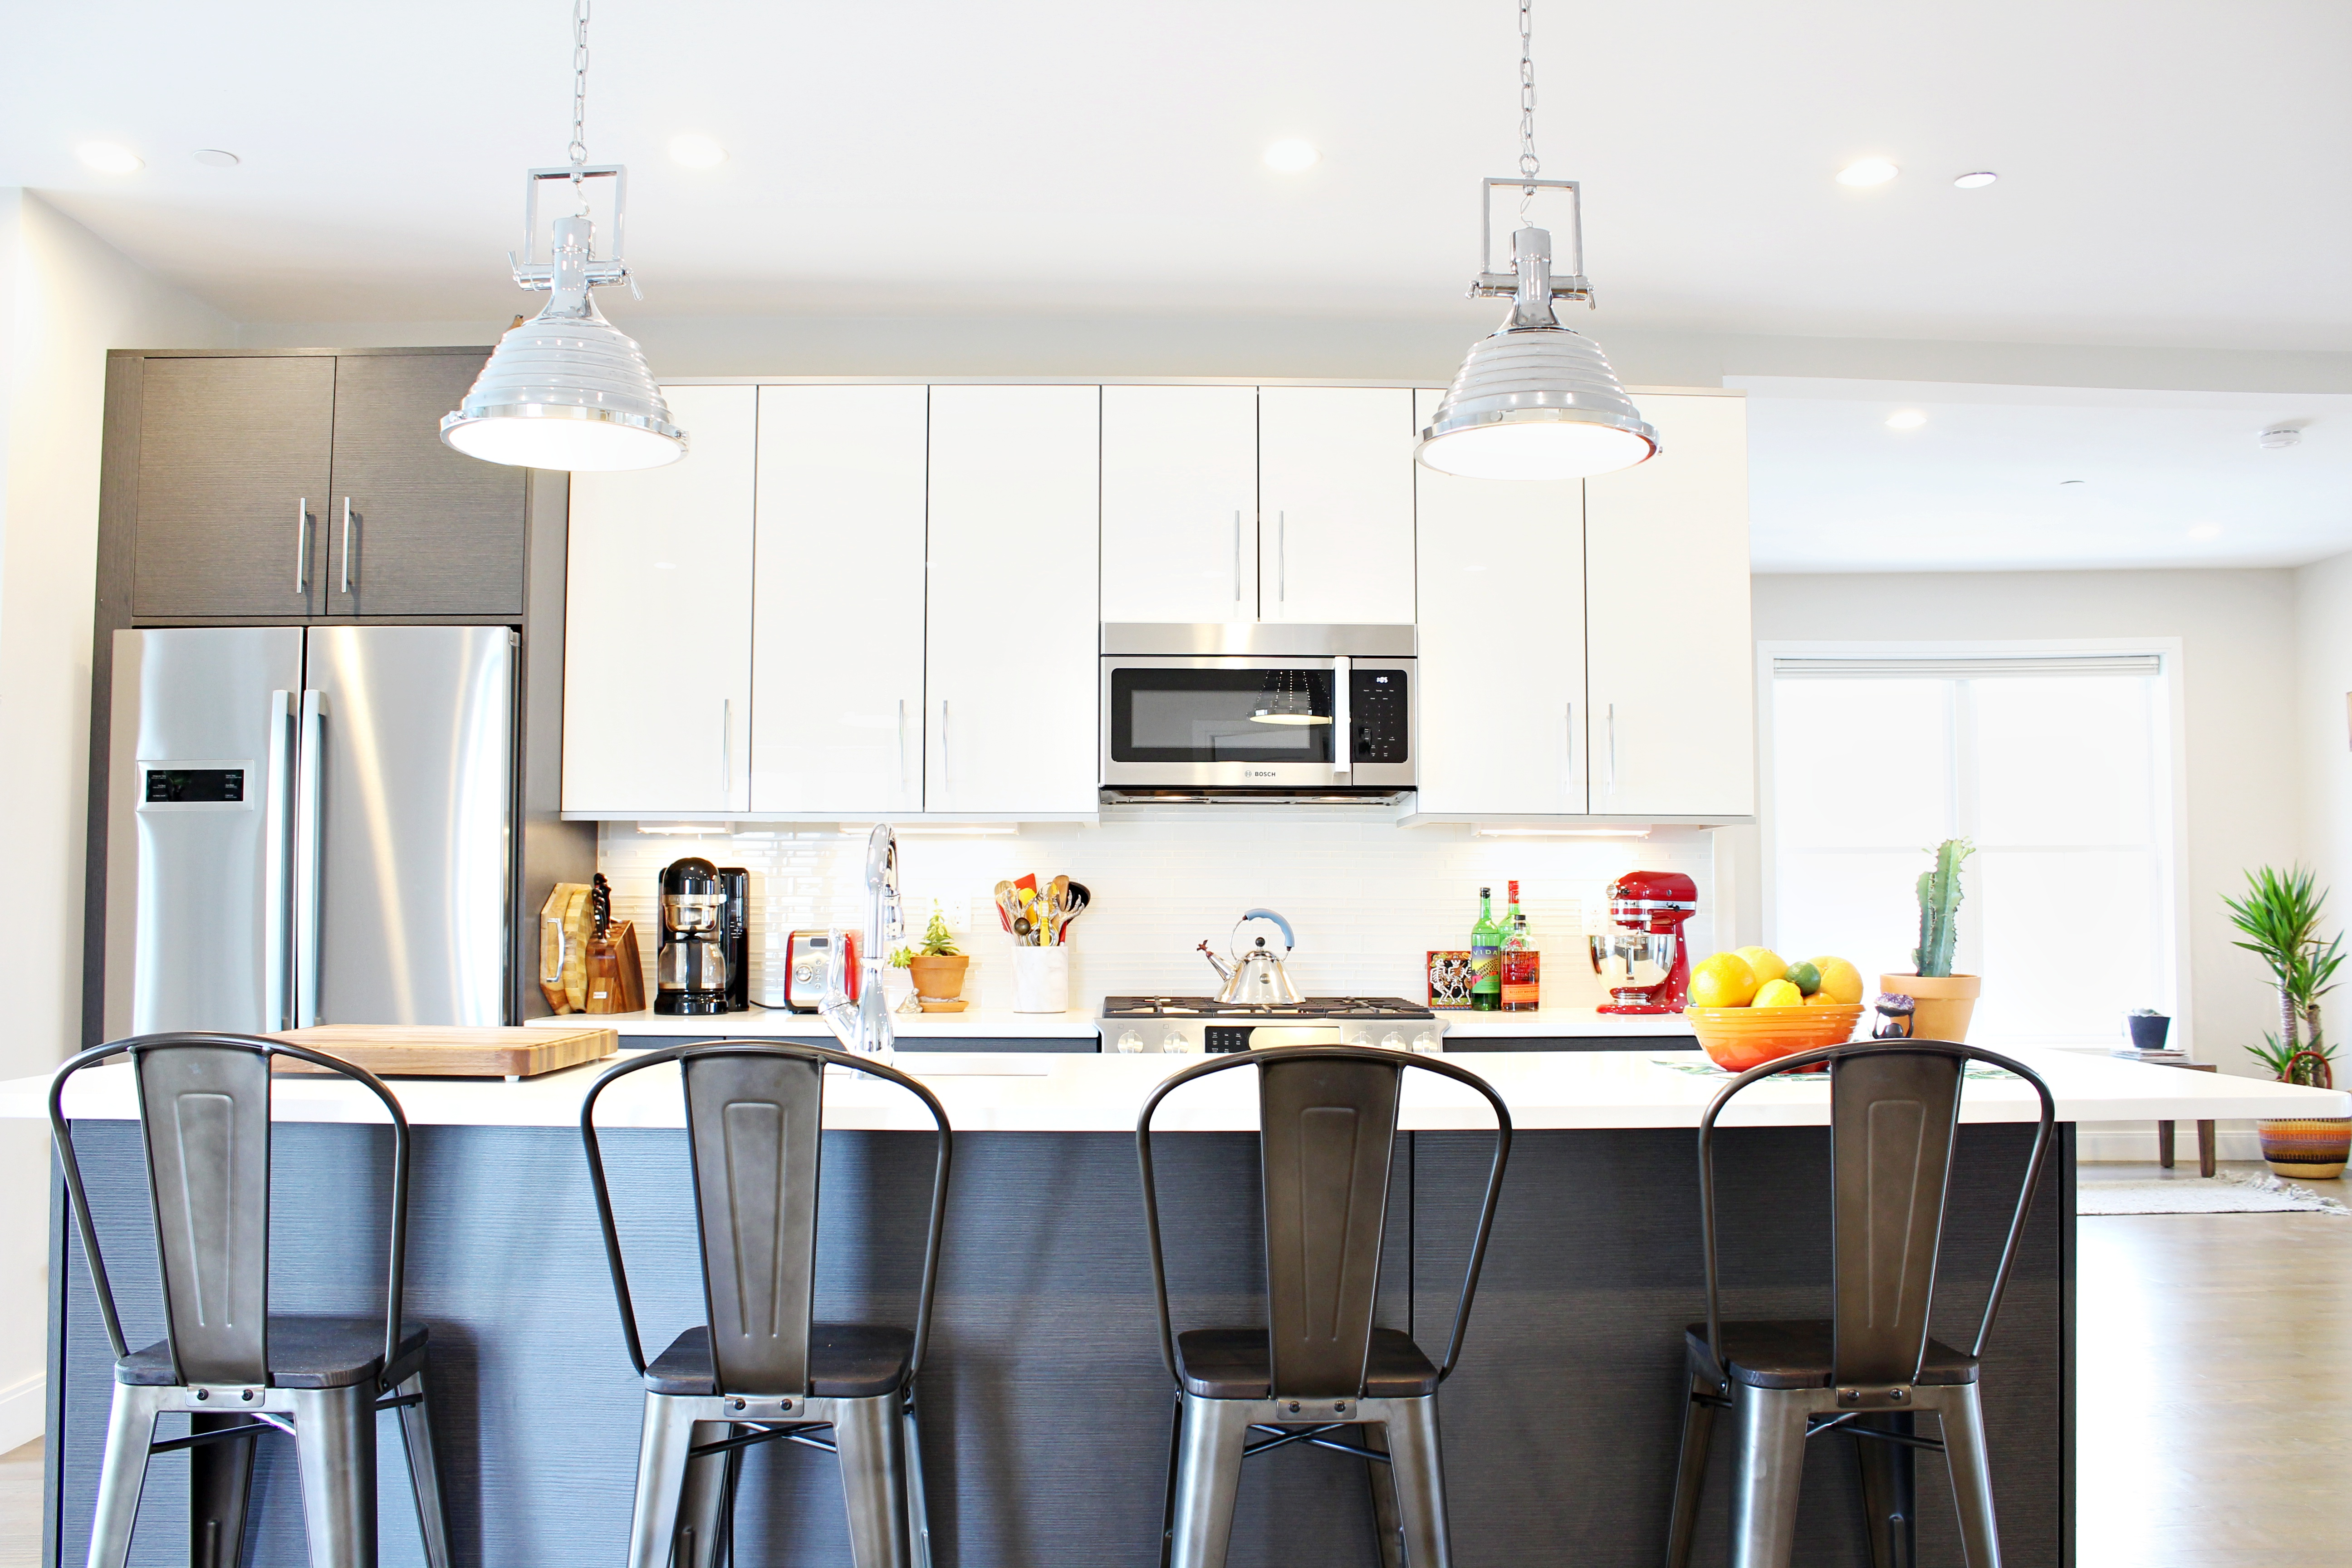 Kitchen Bar Stools On Sale Finding The Right Bar Stools For Your Kitchen Island Space Habit